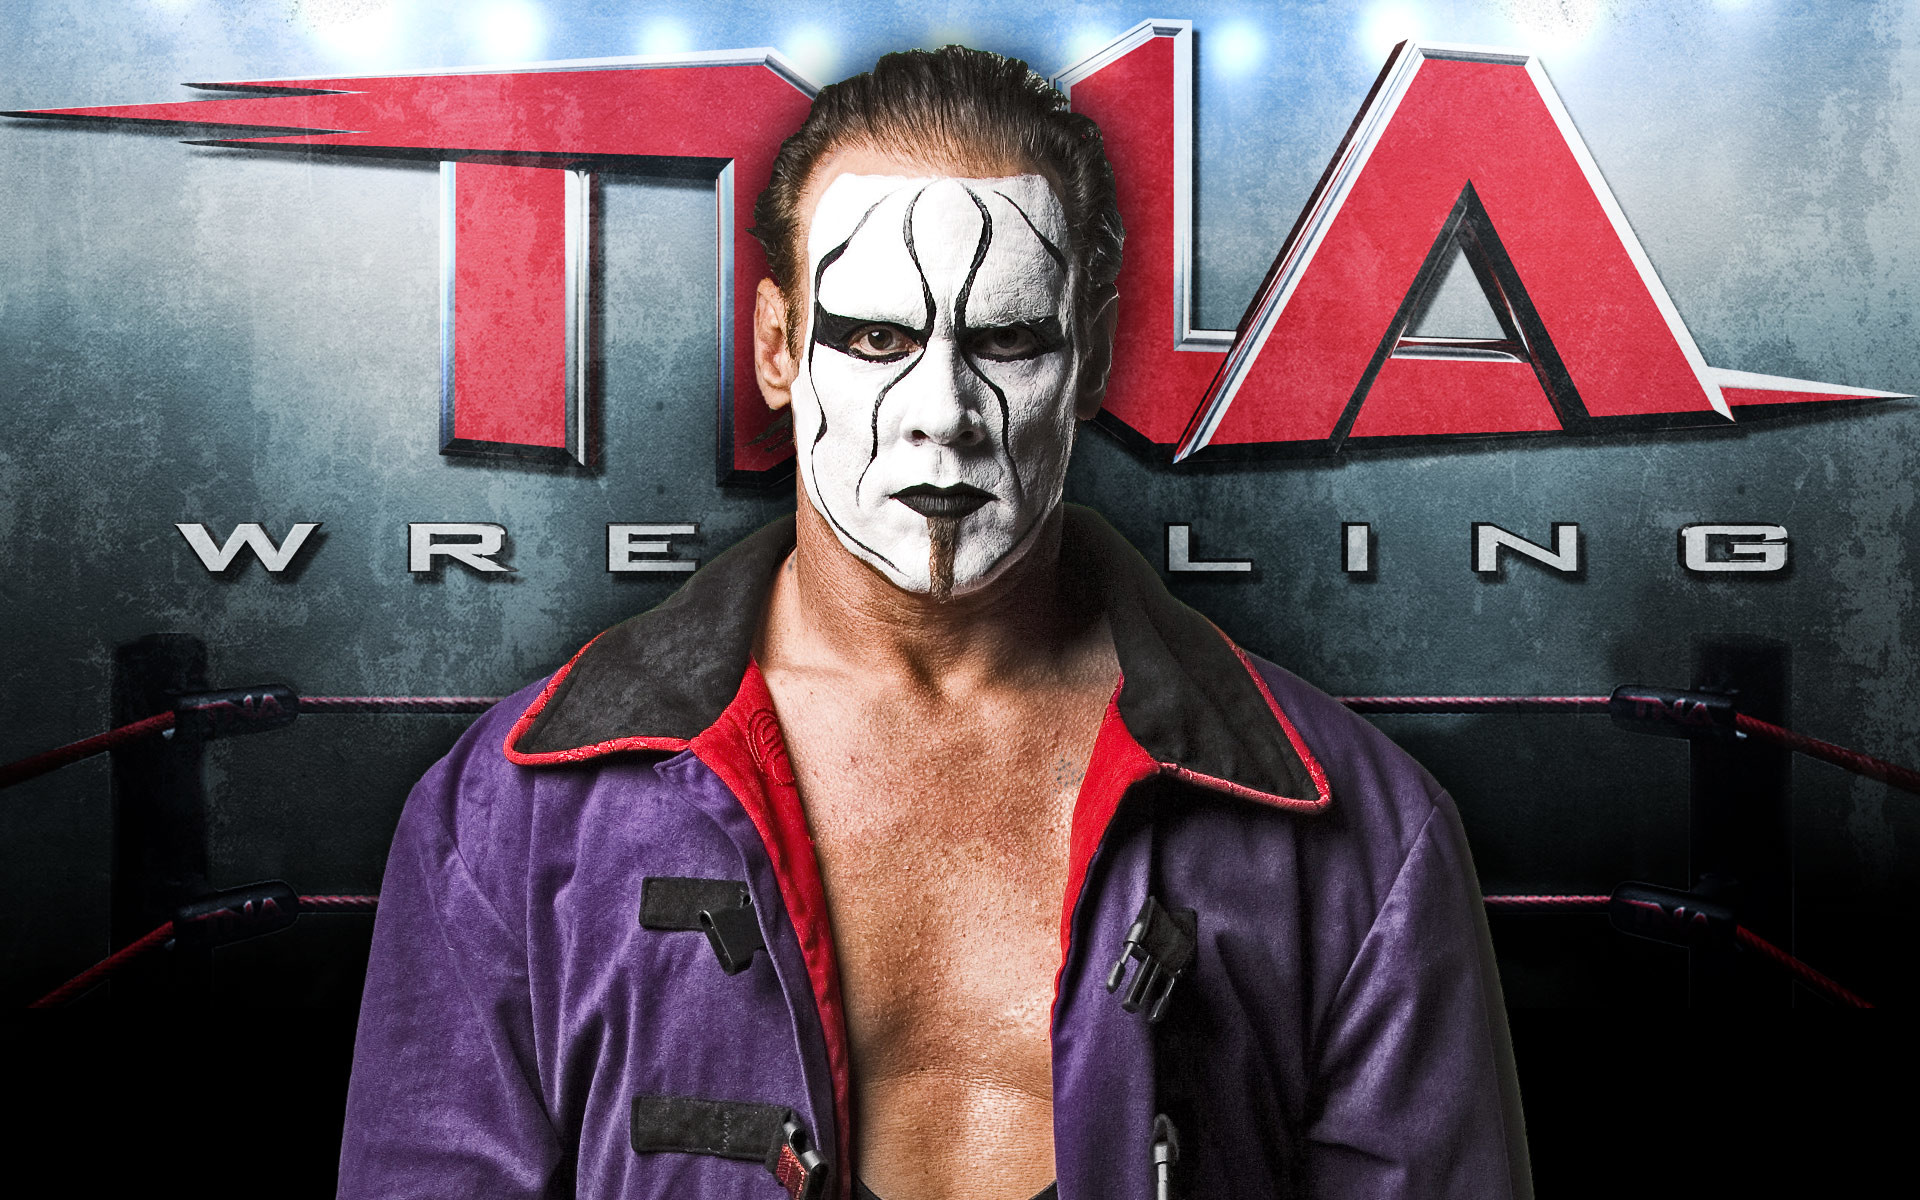 1920x1200 TNA HD Wallpaper | Background Image |  | ID:84399 - Wallpaper Abyss